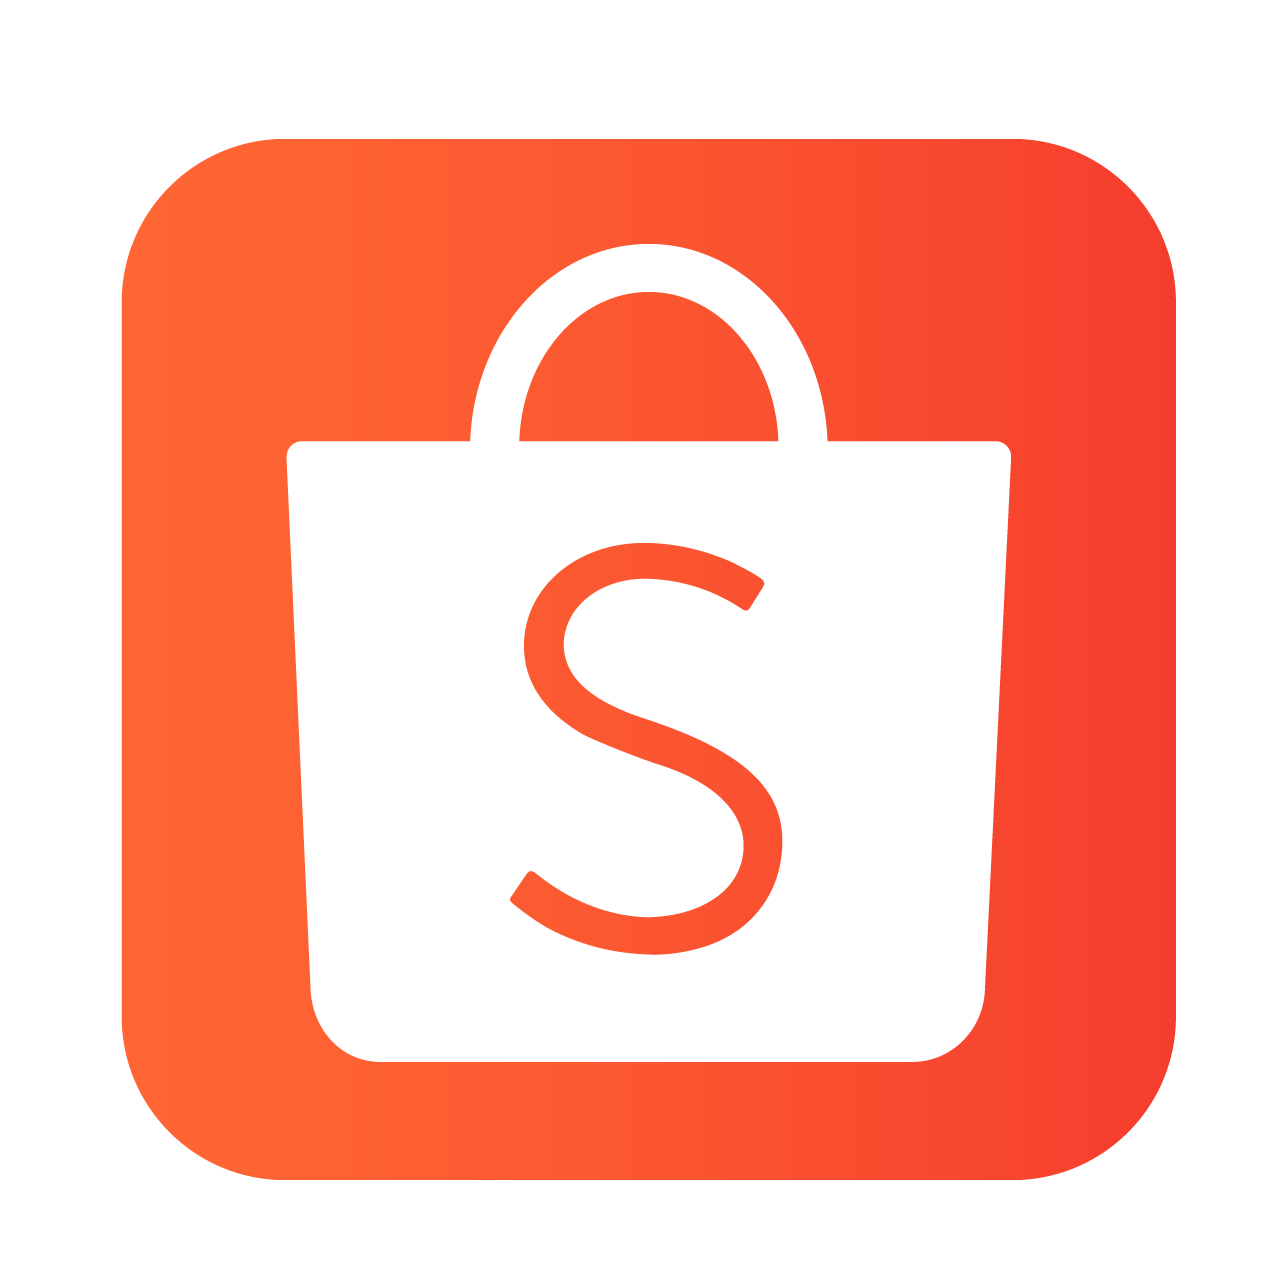 Shopee Png Free Shopee Png Transparent Images 96779 Pngio